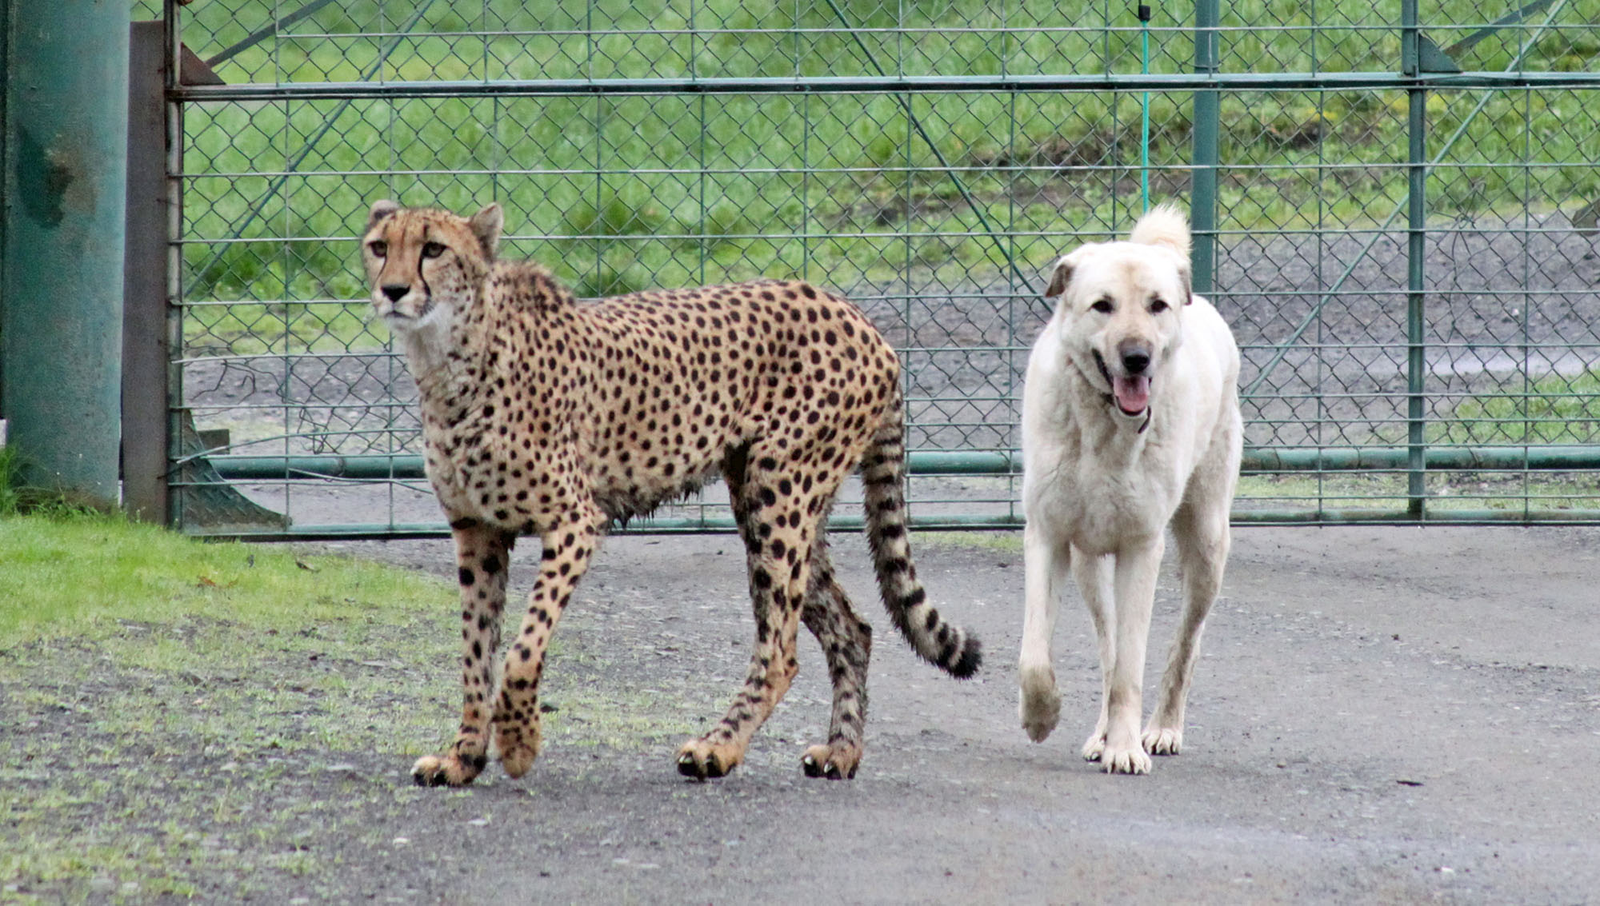 This cheetah is an evangelical Christian and this Anatolian shepherd is an outspoken pro-choice advocate. But the cheetah found it in his heart to invite the Anatolian shepherd out to his chalet in Aspen last Thanksgiving, and the two found common ground over their shared love of skiing.